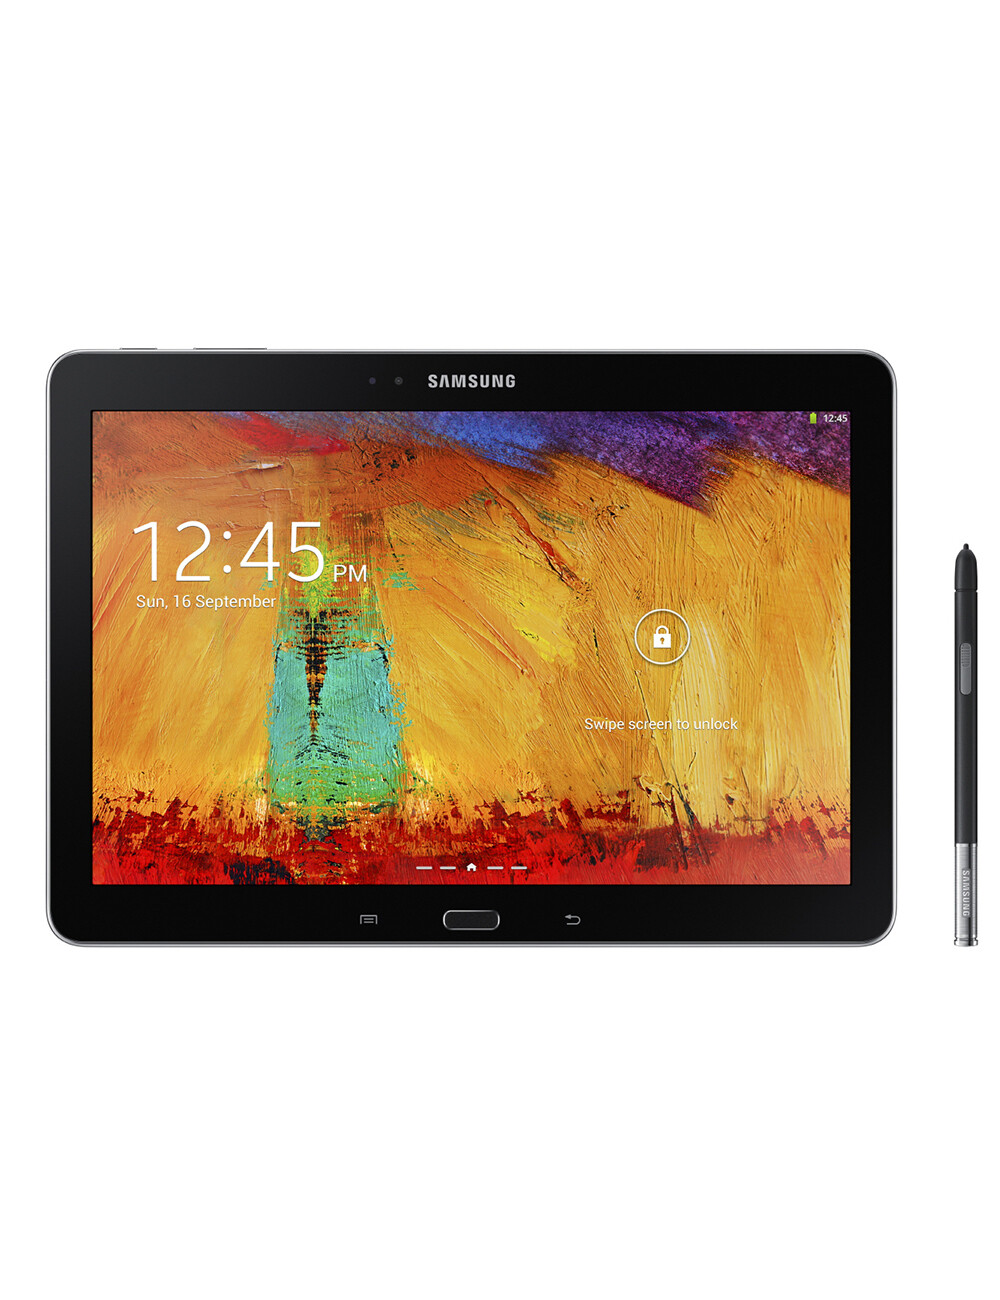 Samsung GALAXY Note 10.1 (2014 Edition) specs